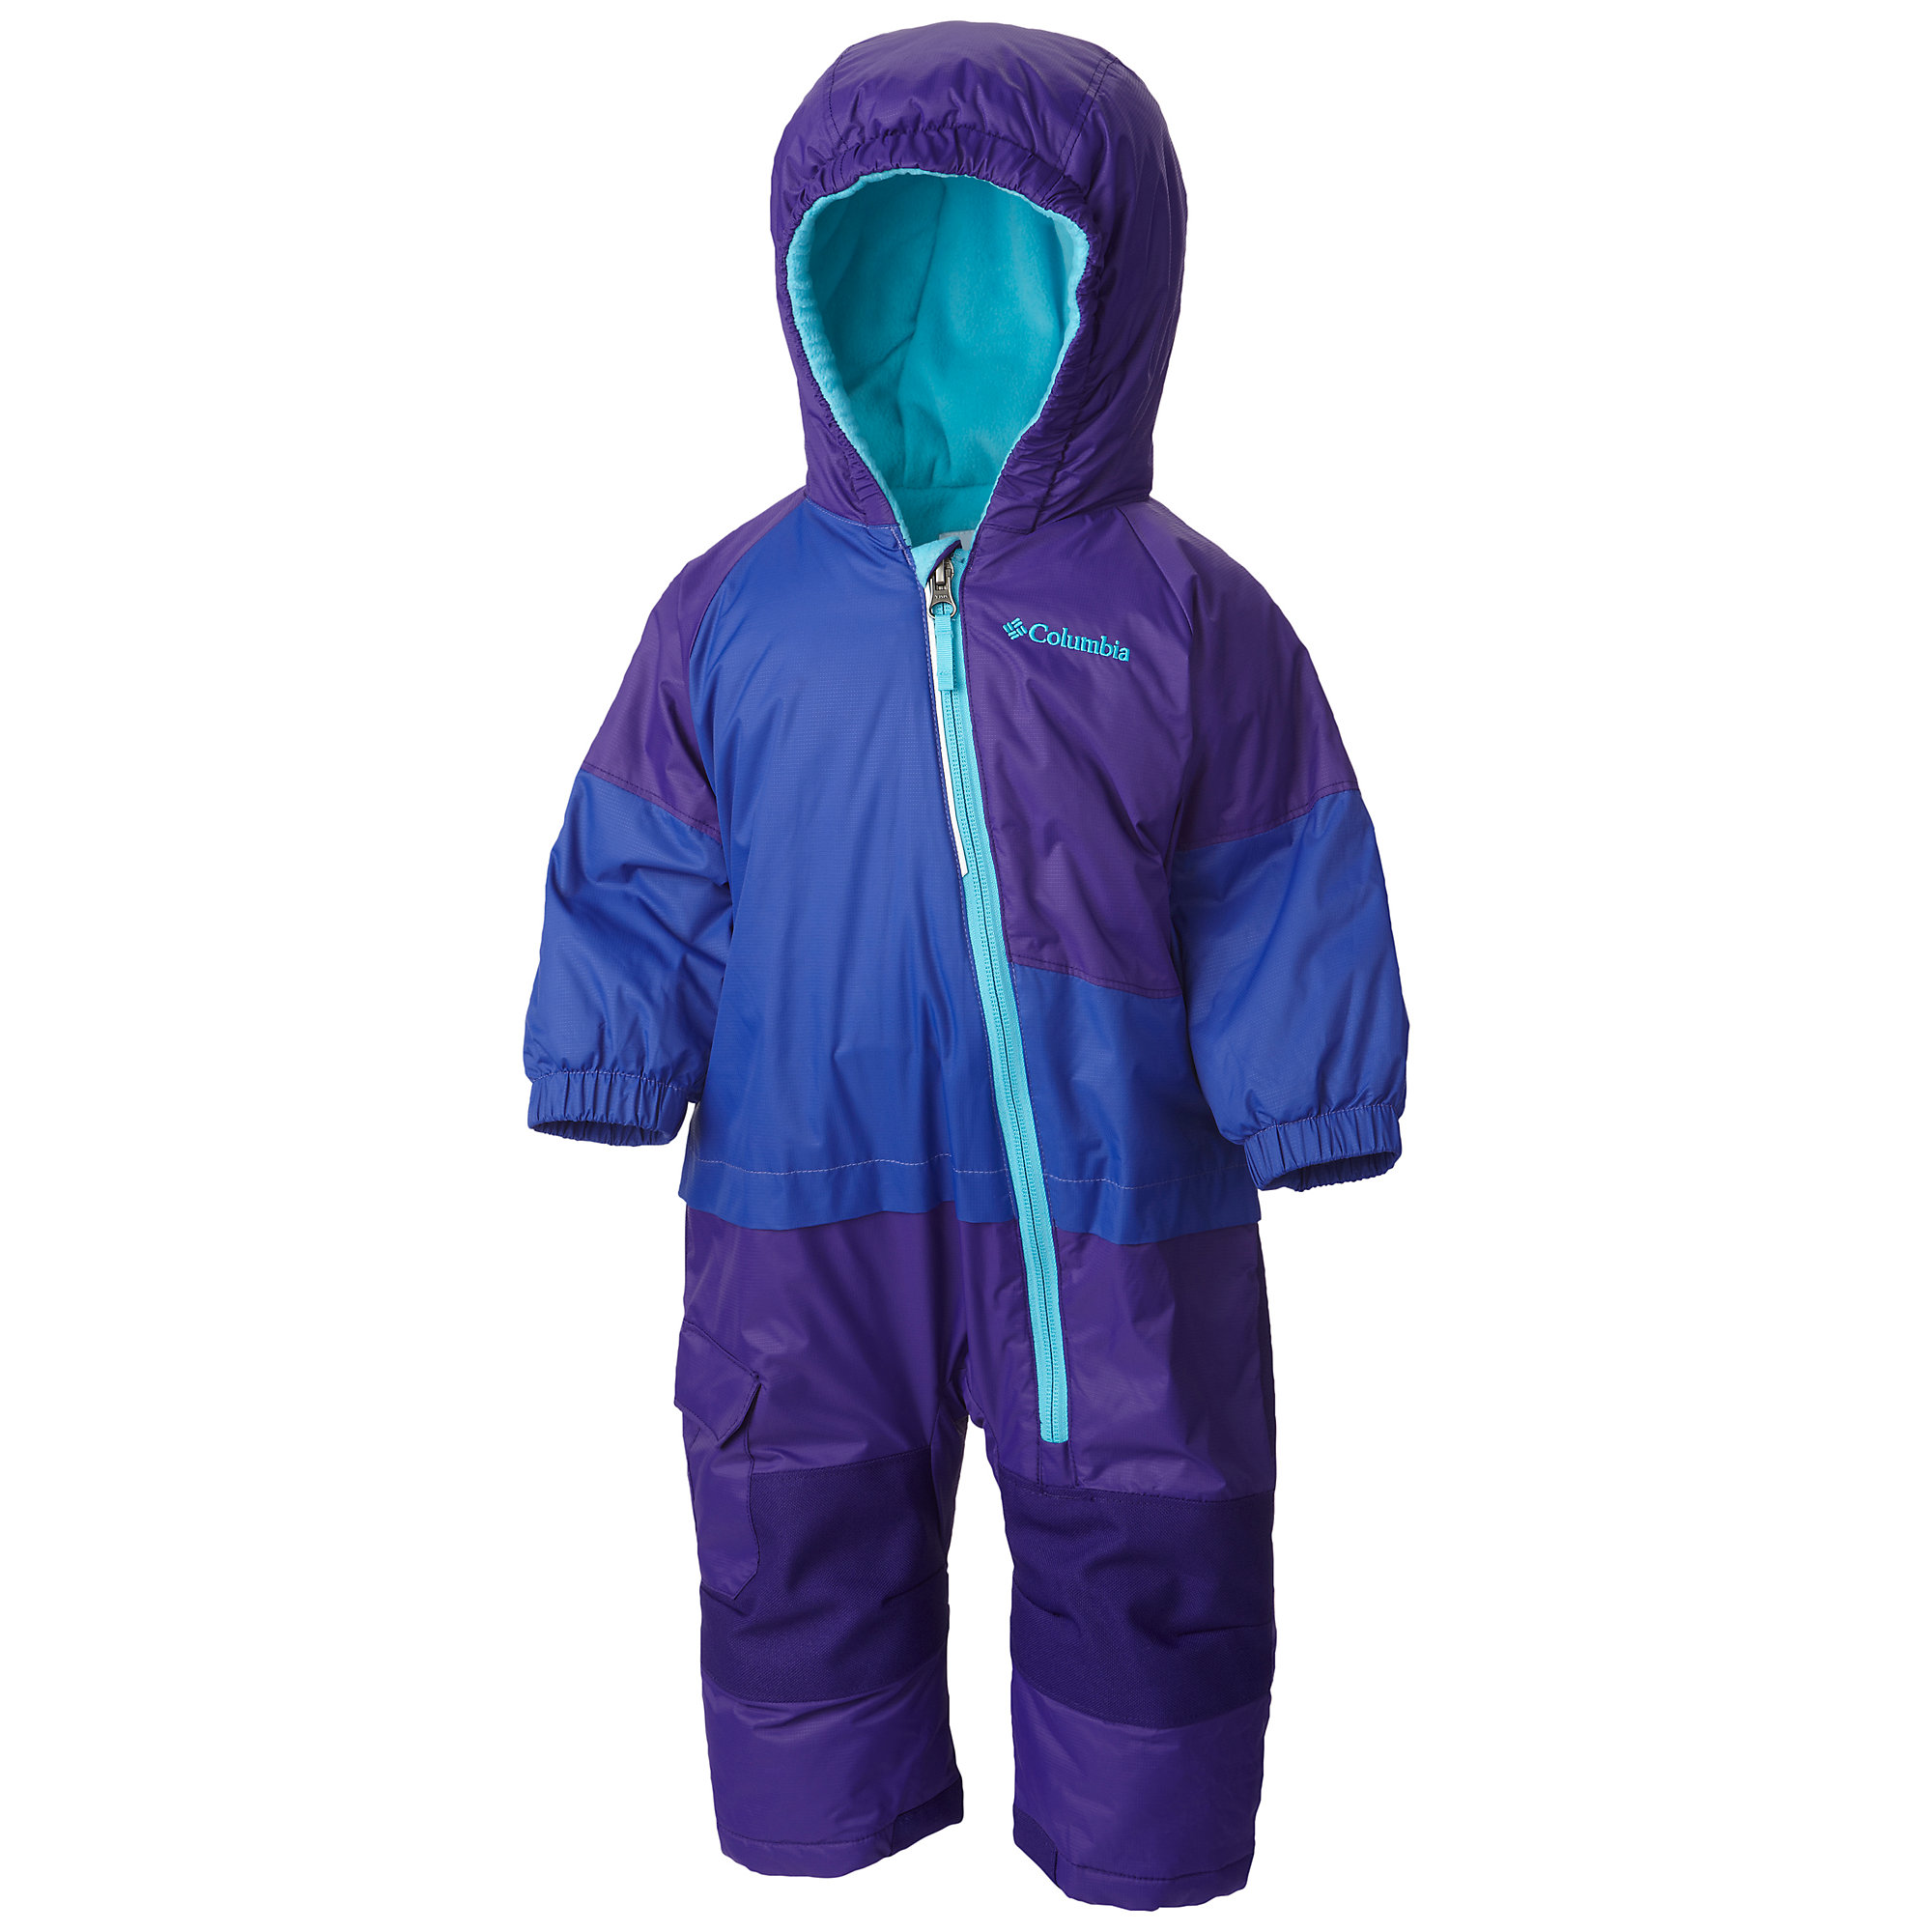 Columbia Little Dude Suit